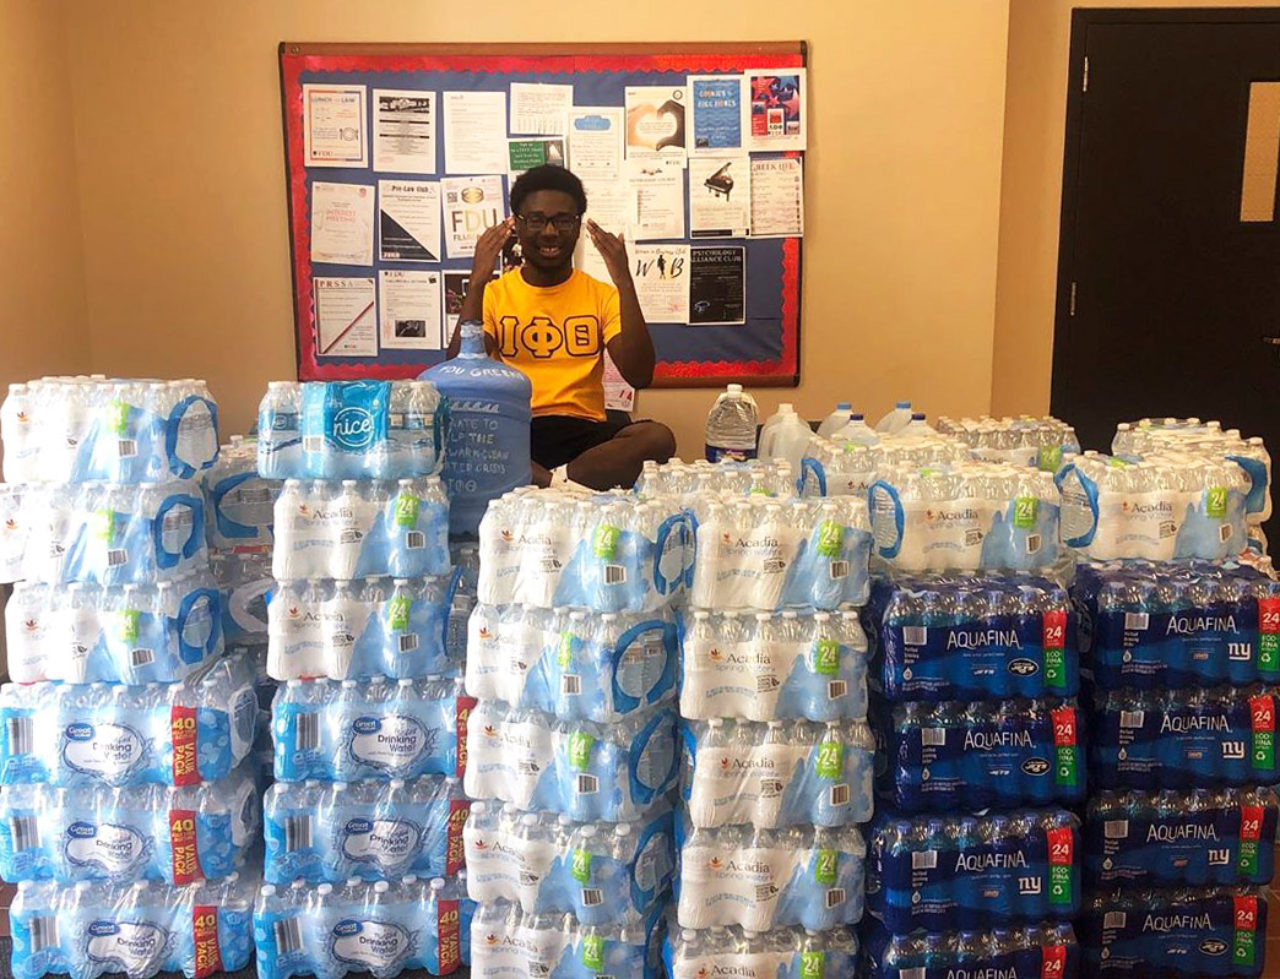 A student sits in front of mountains of bottled water cases.